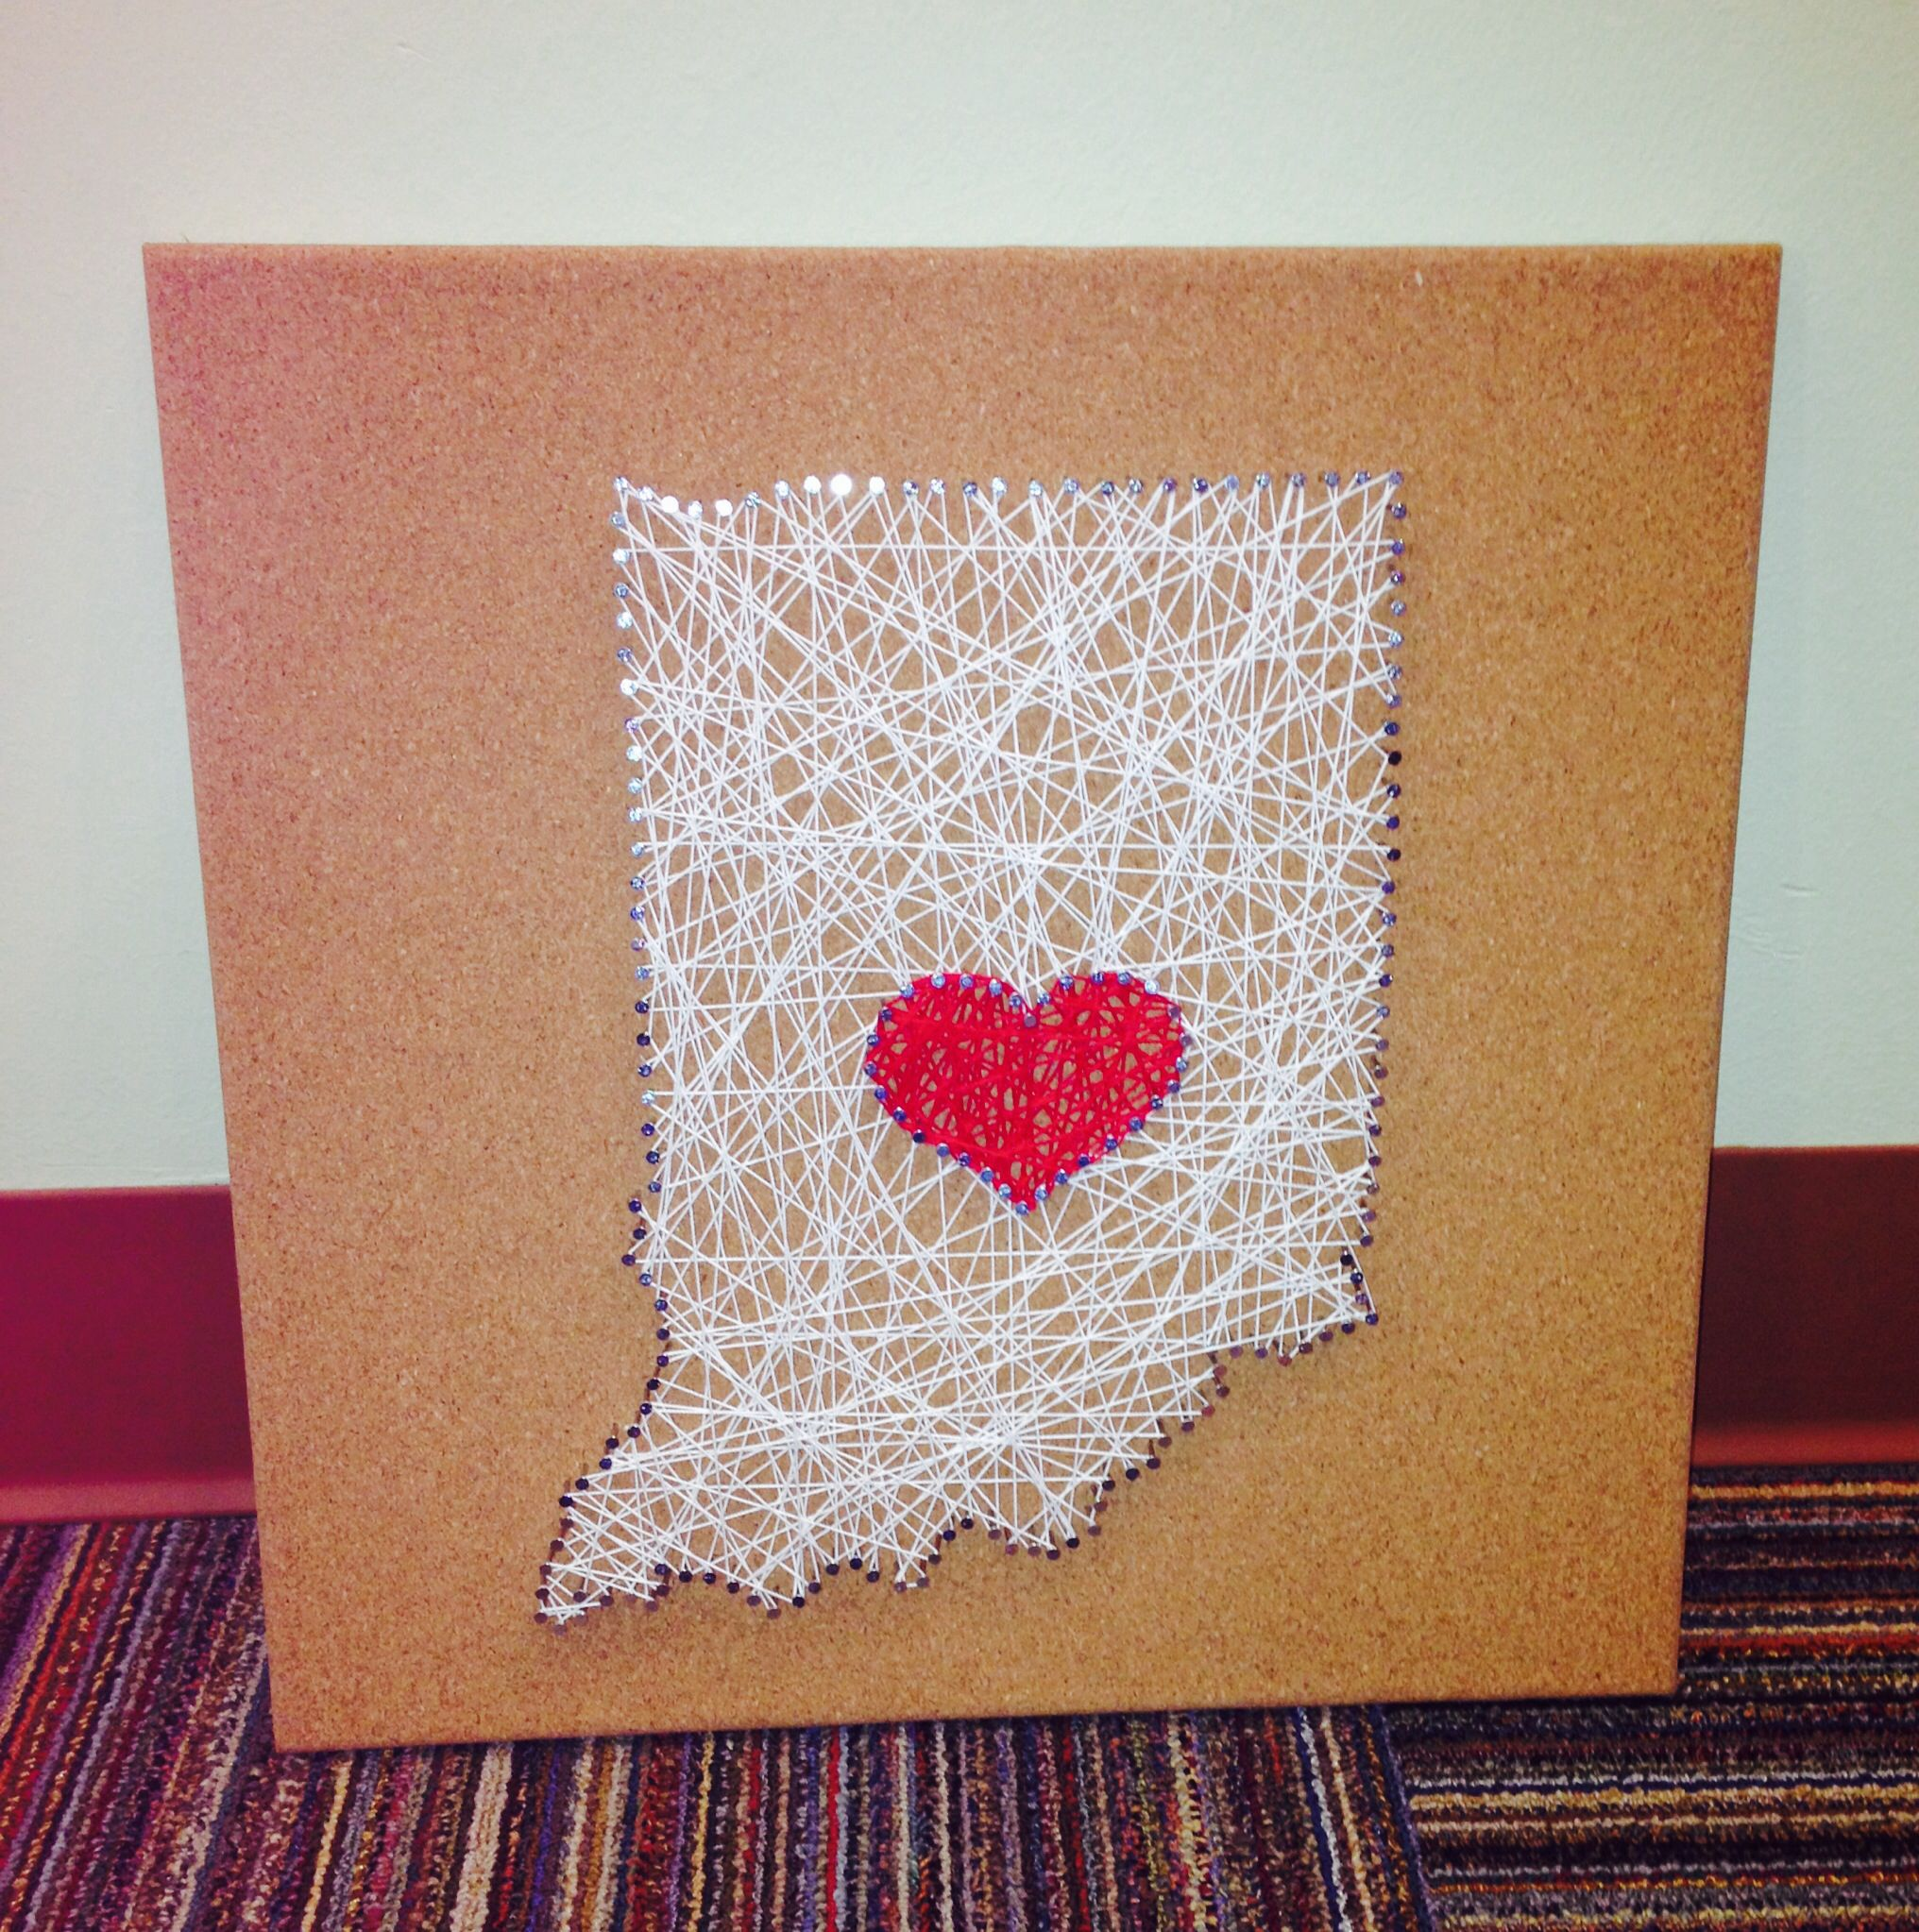 String art on cork board. All you need is cork, string, a template ...